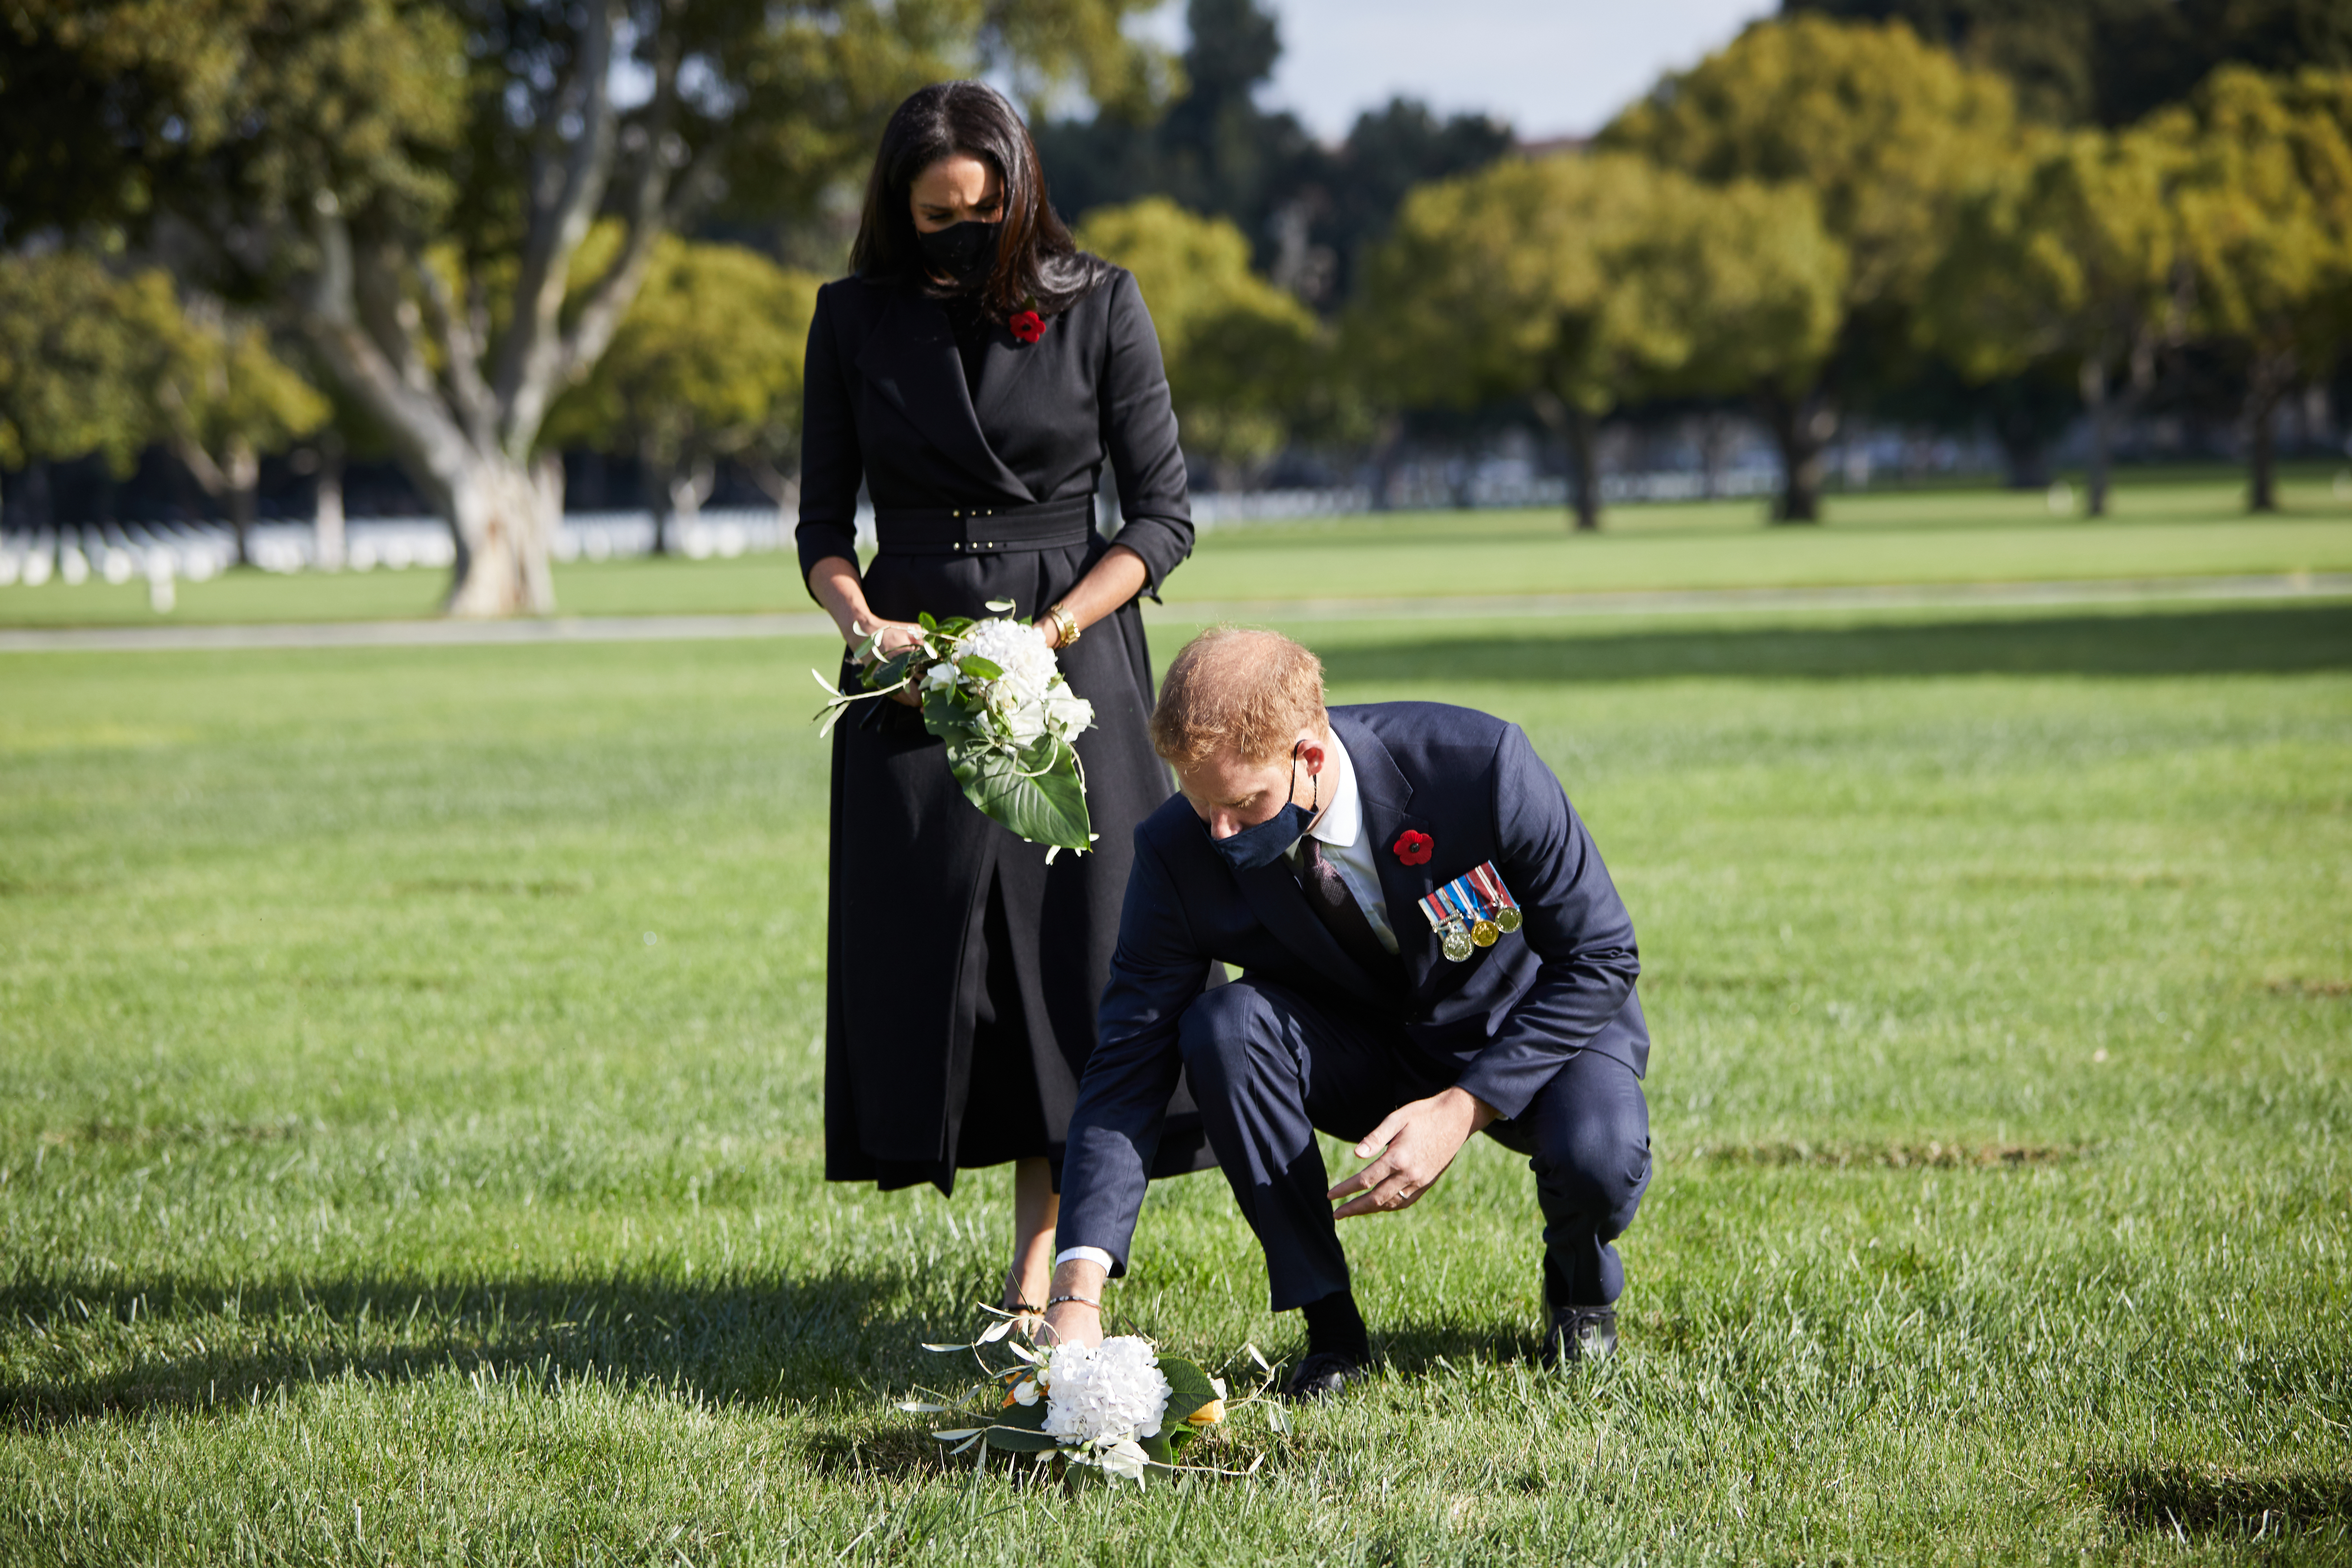 Harry and Meghan's 'personal' Remembrance Sunday visit at LA cemetery